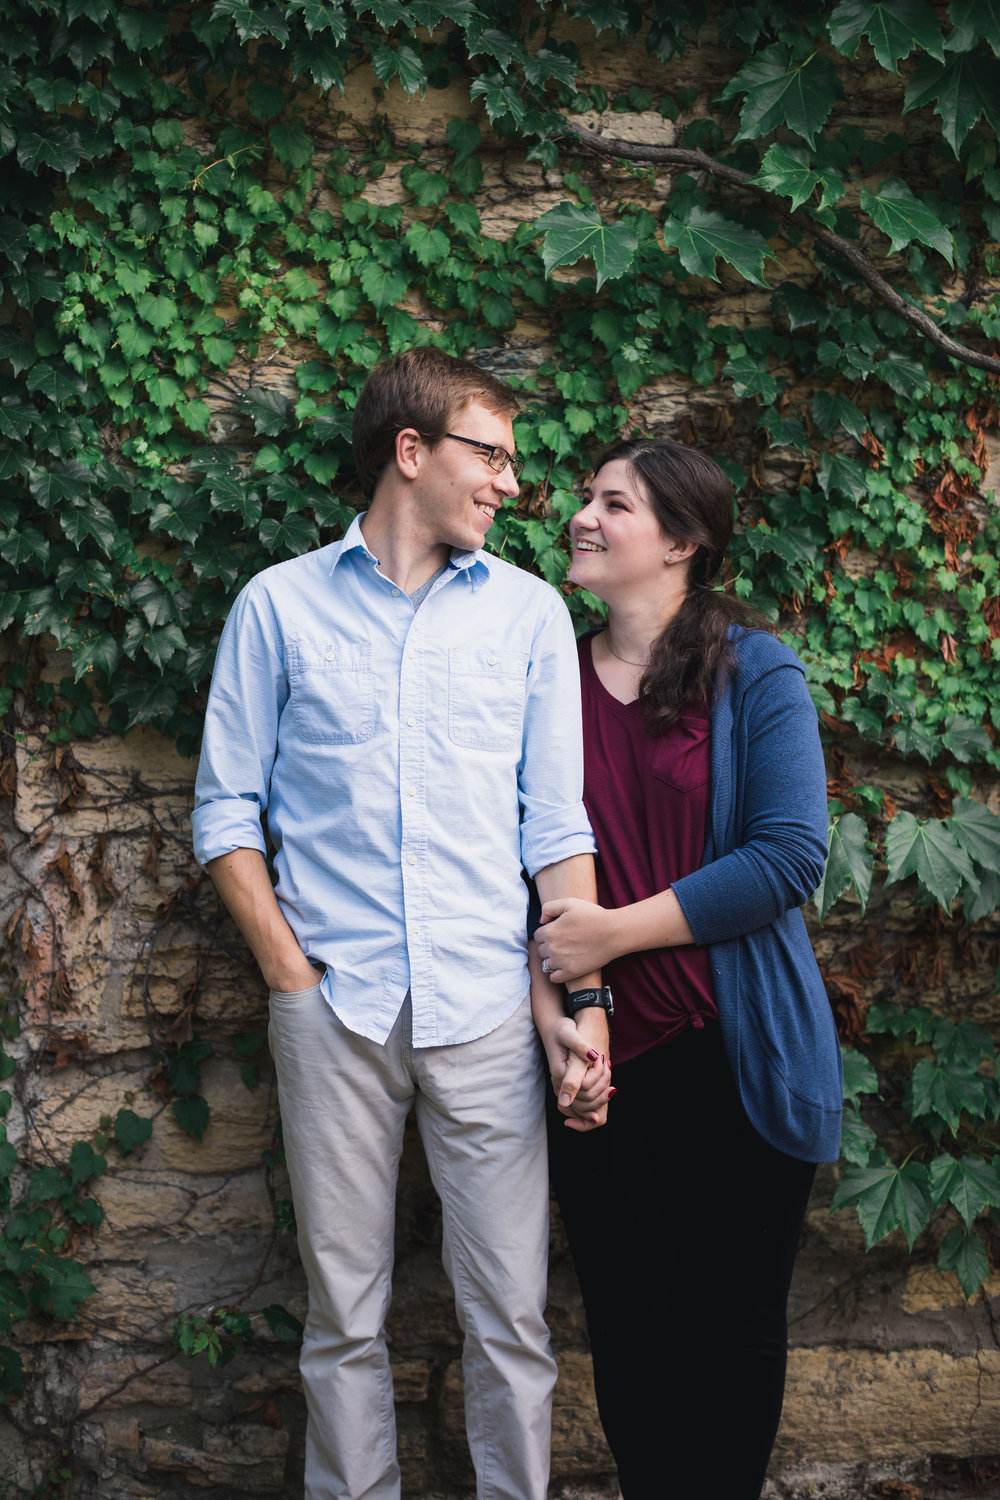 20180620_leslie_and_grant_engagement_21_5R3A0189.jpg